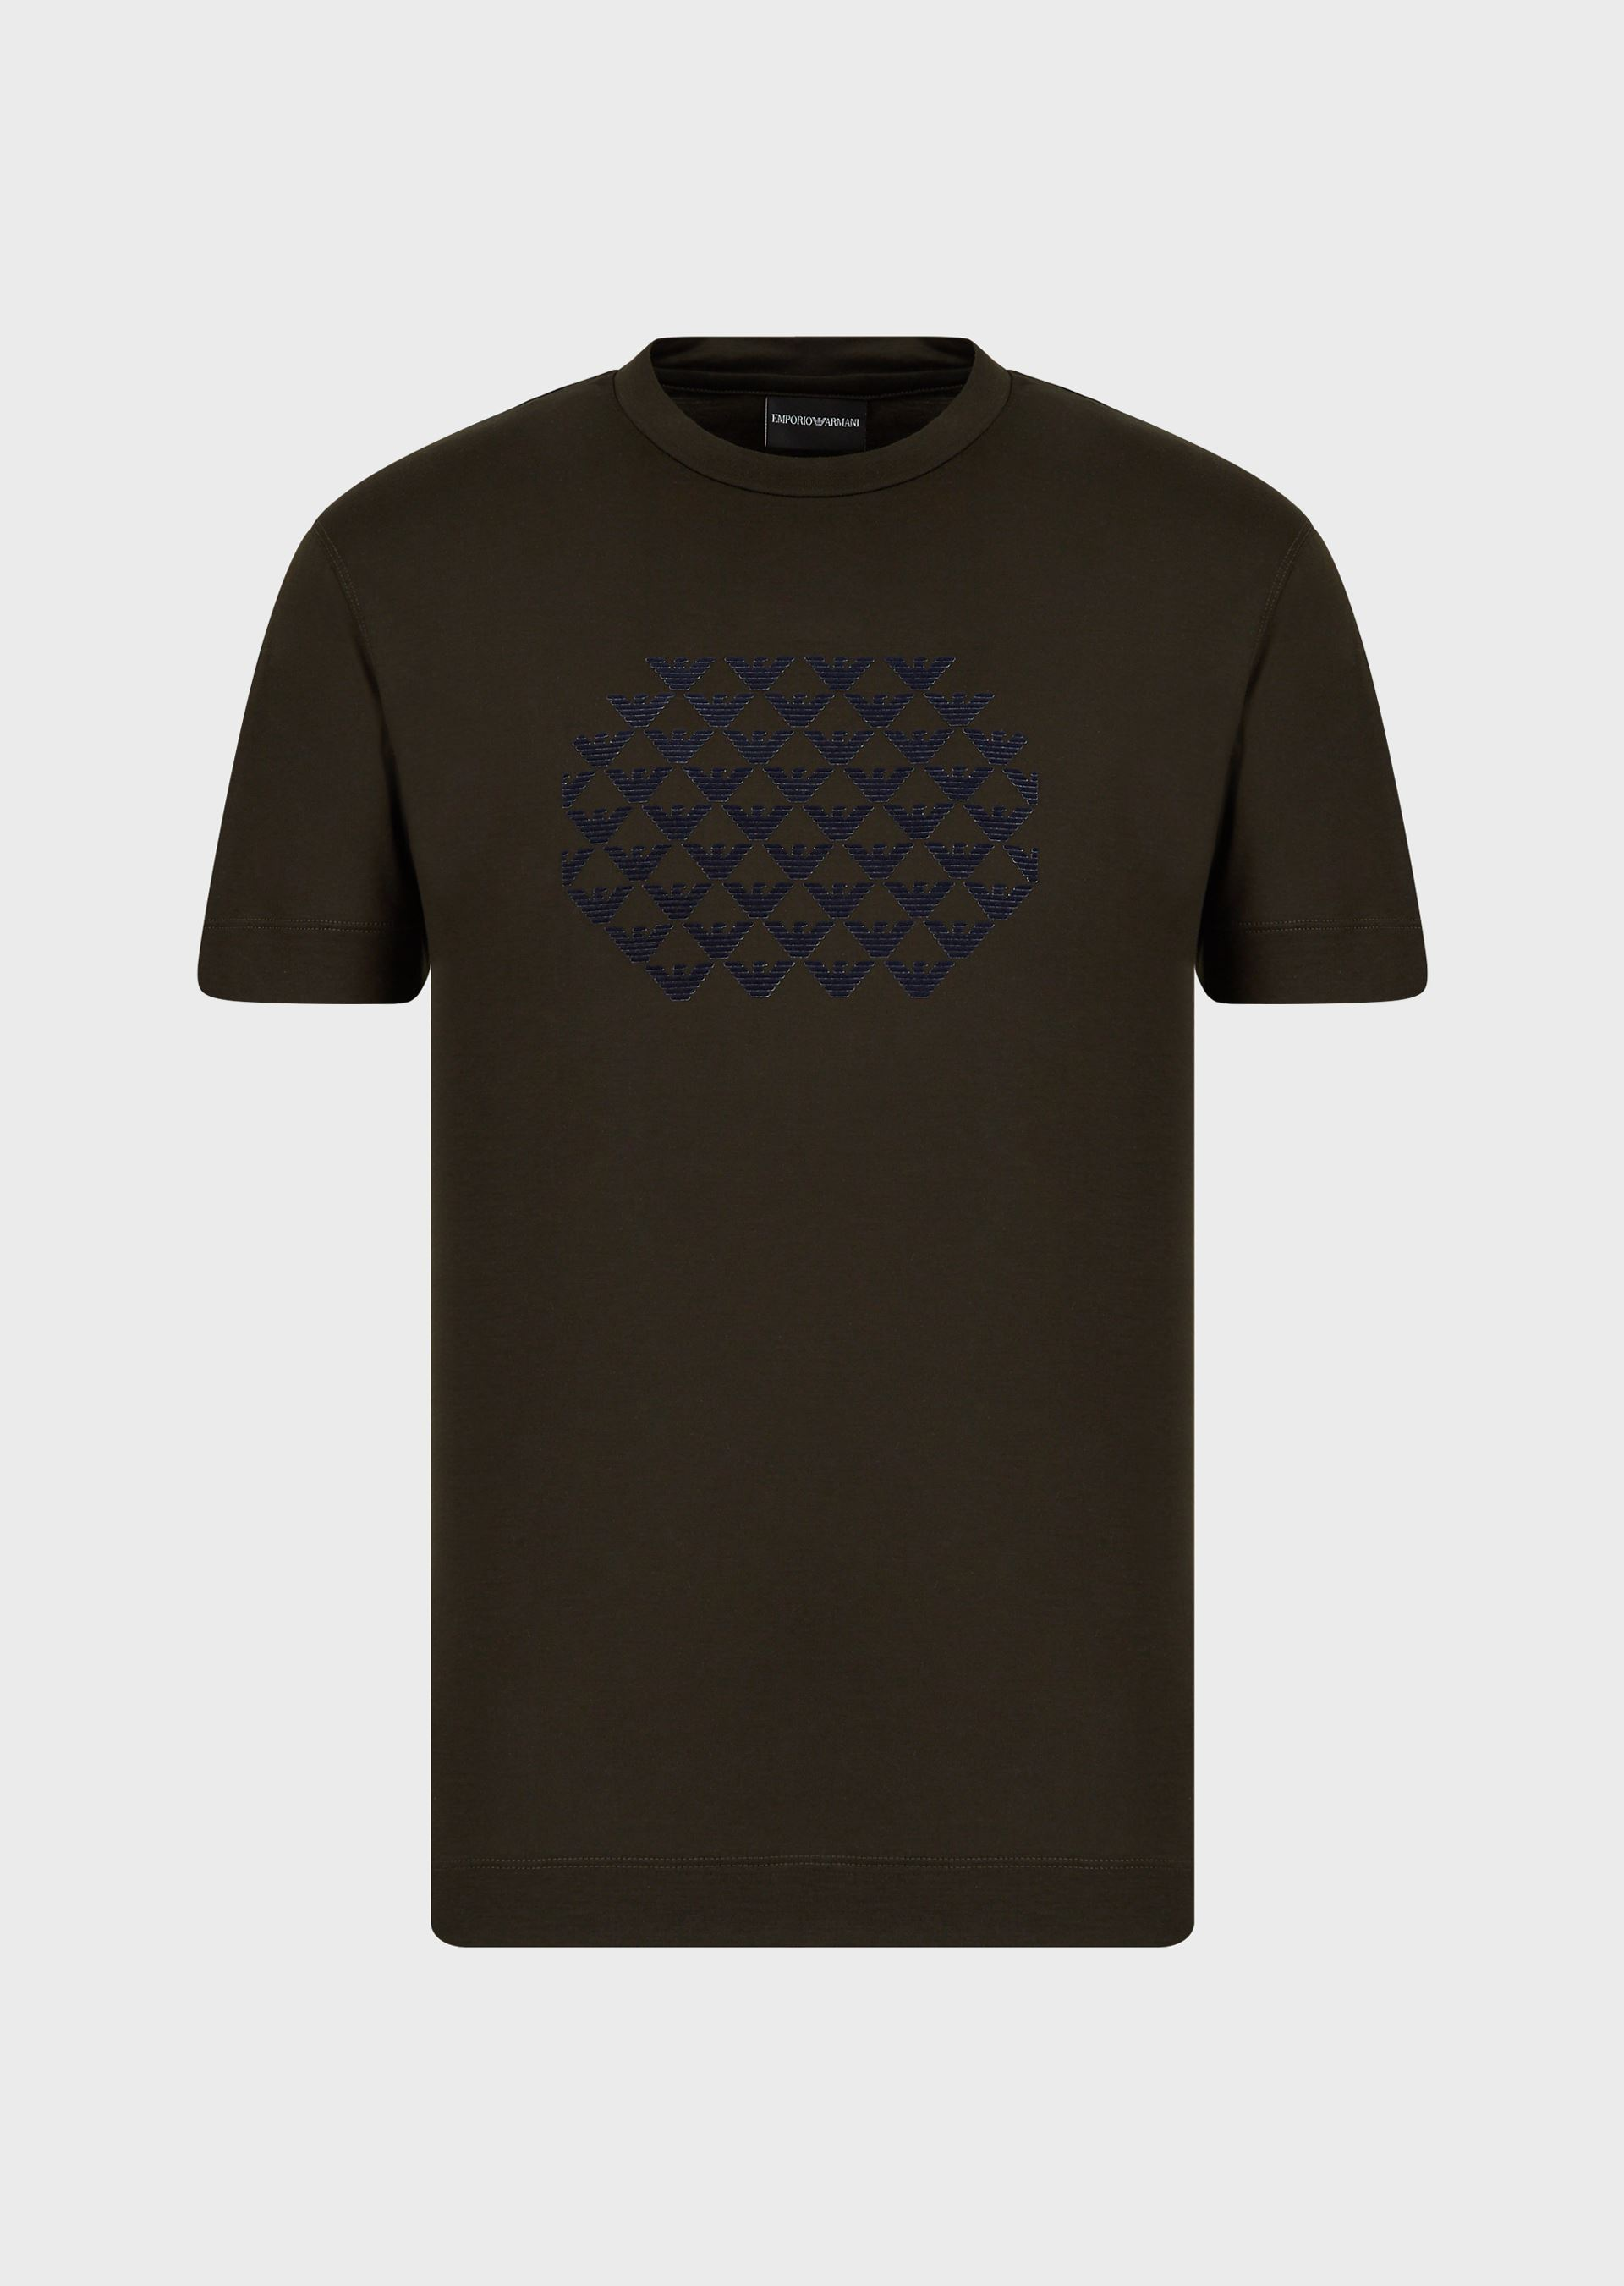 EMPORIO ARMANI Tencel-blend T-shirt with repeated flocked eagles